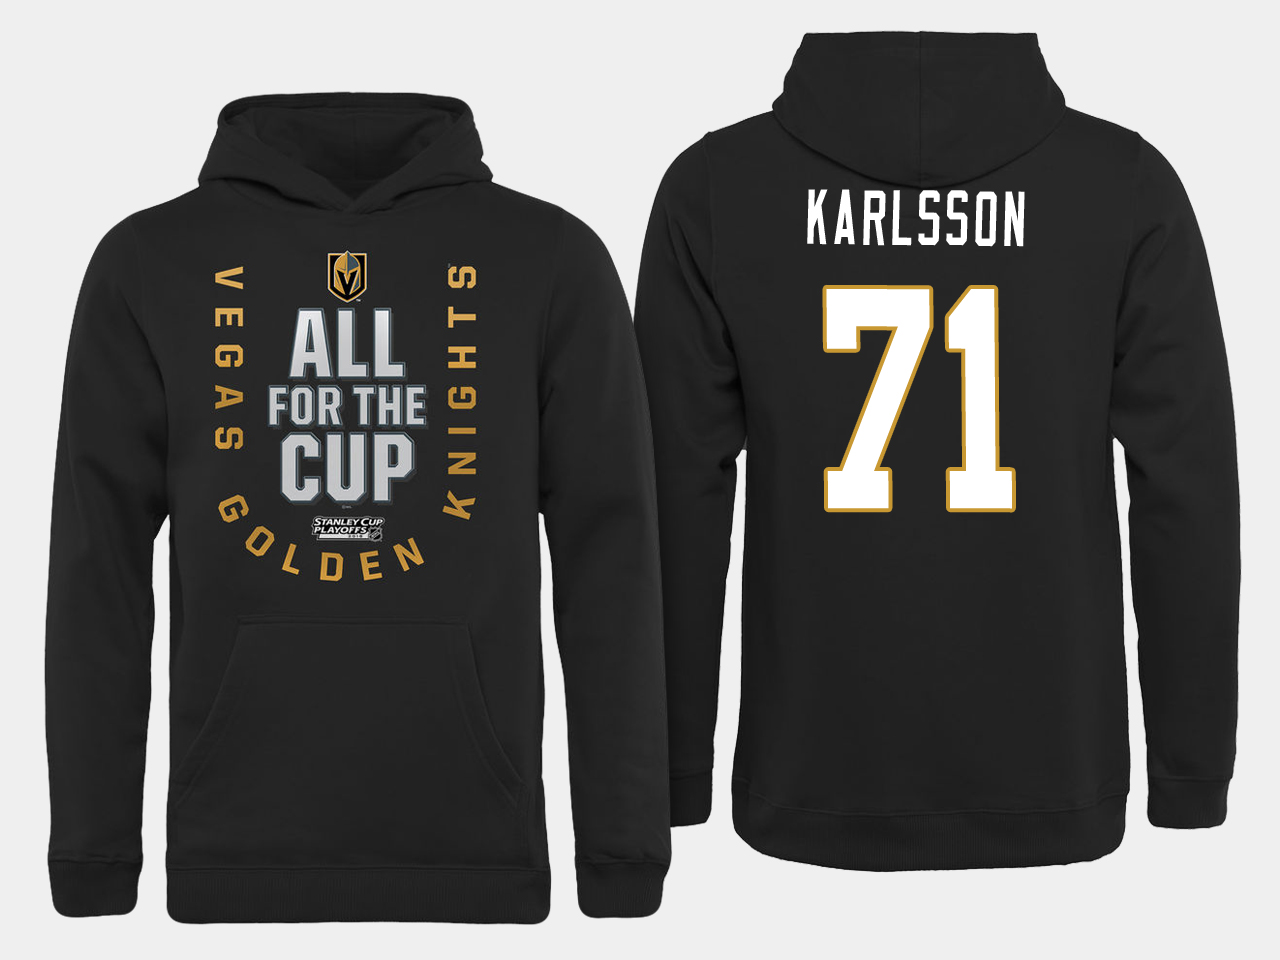 Men NHL Vegas Golden Knights 71 Karlsson All for the Cup hoodie